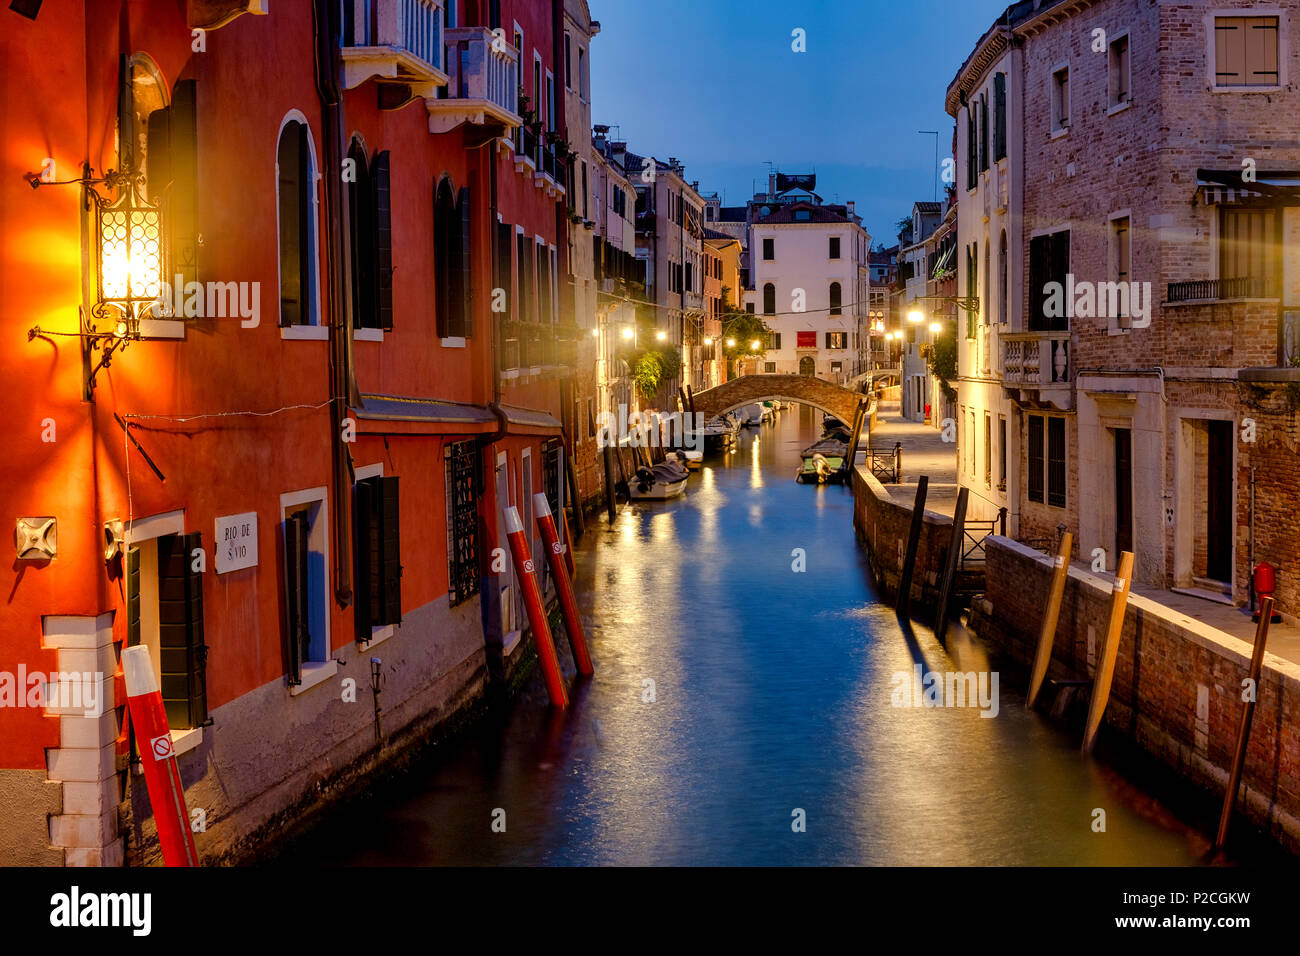 Rio di San Vio, the canal that connects Canal Grande to the Canale della Giudecca, Venice, Italy - Stock Image